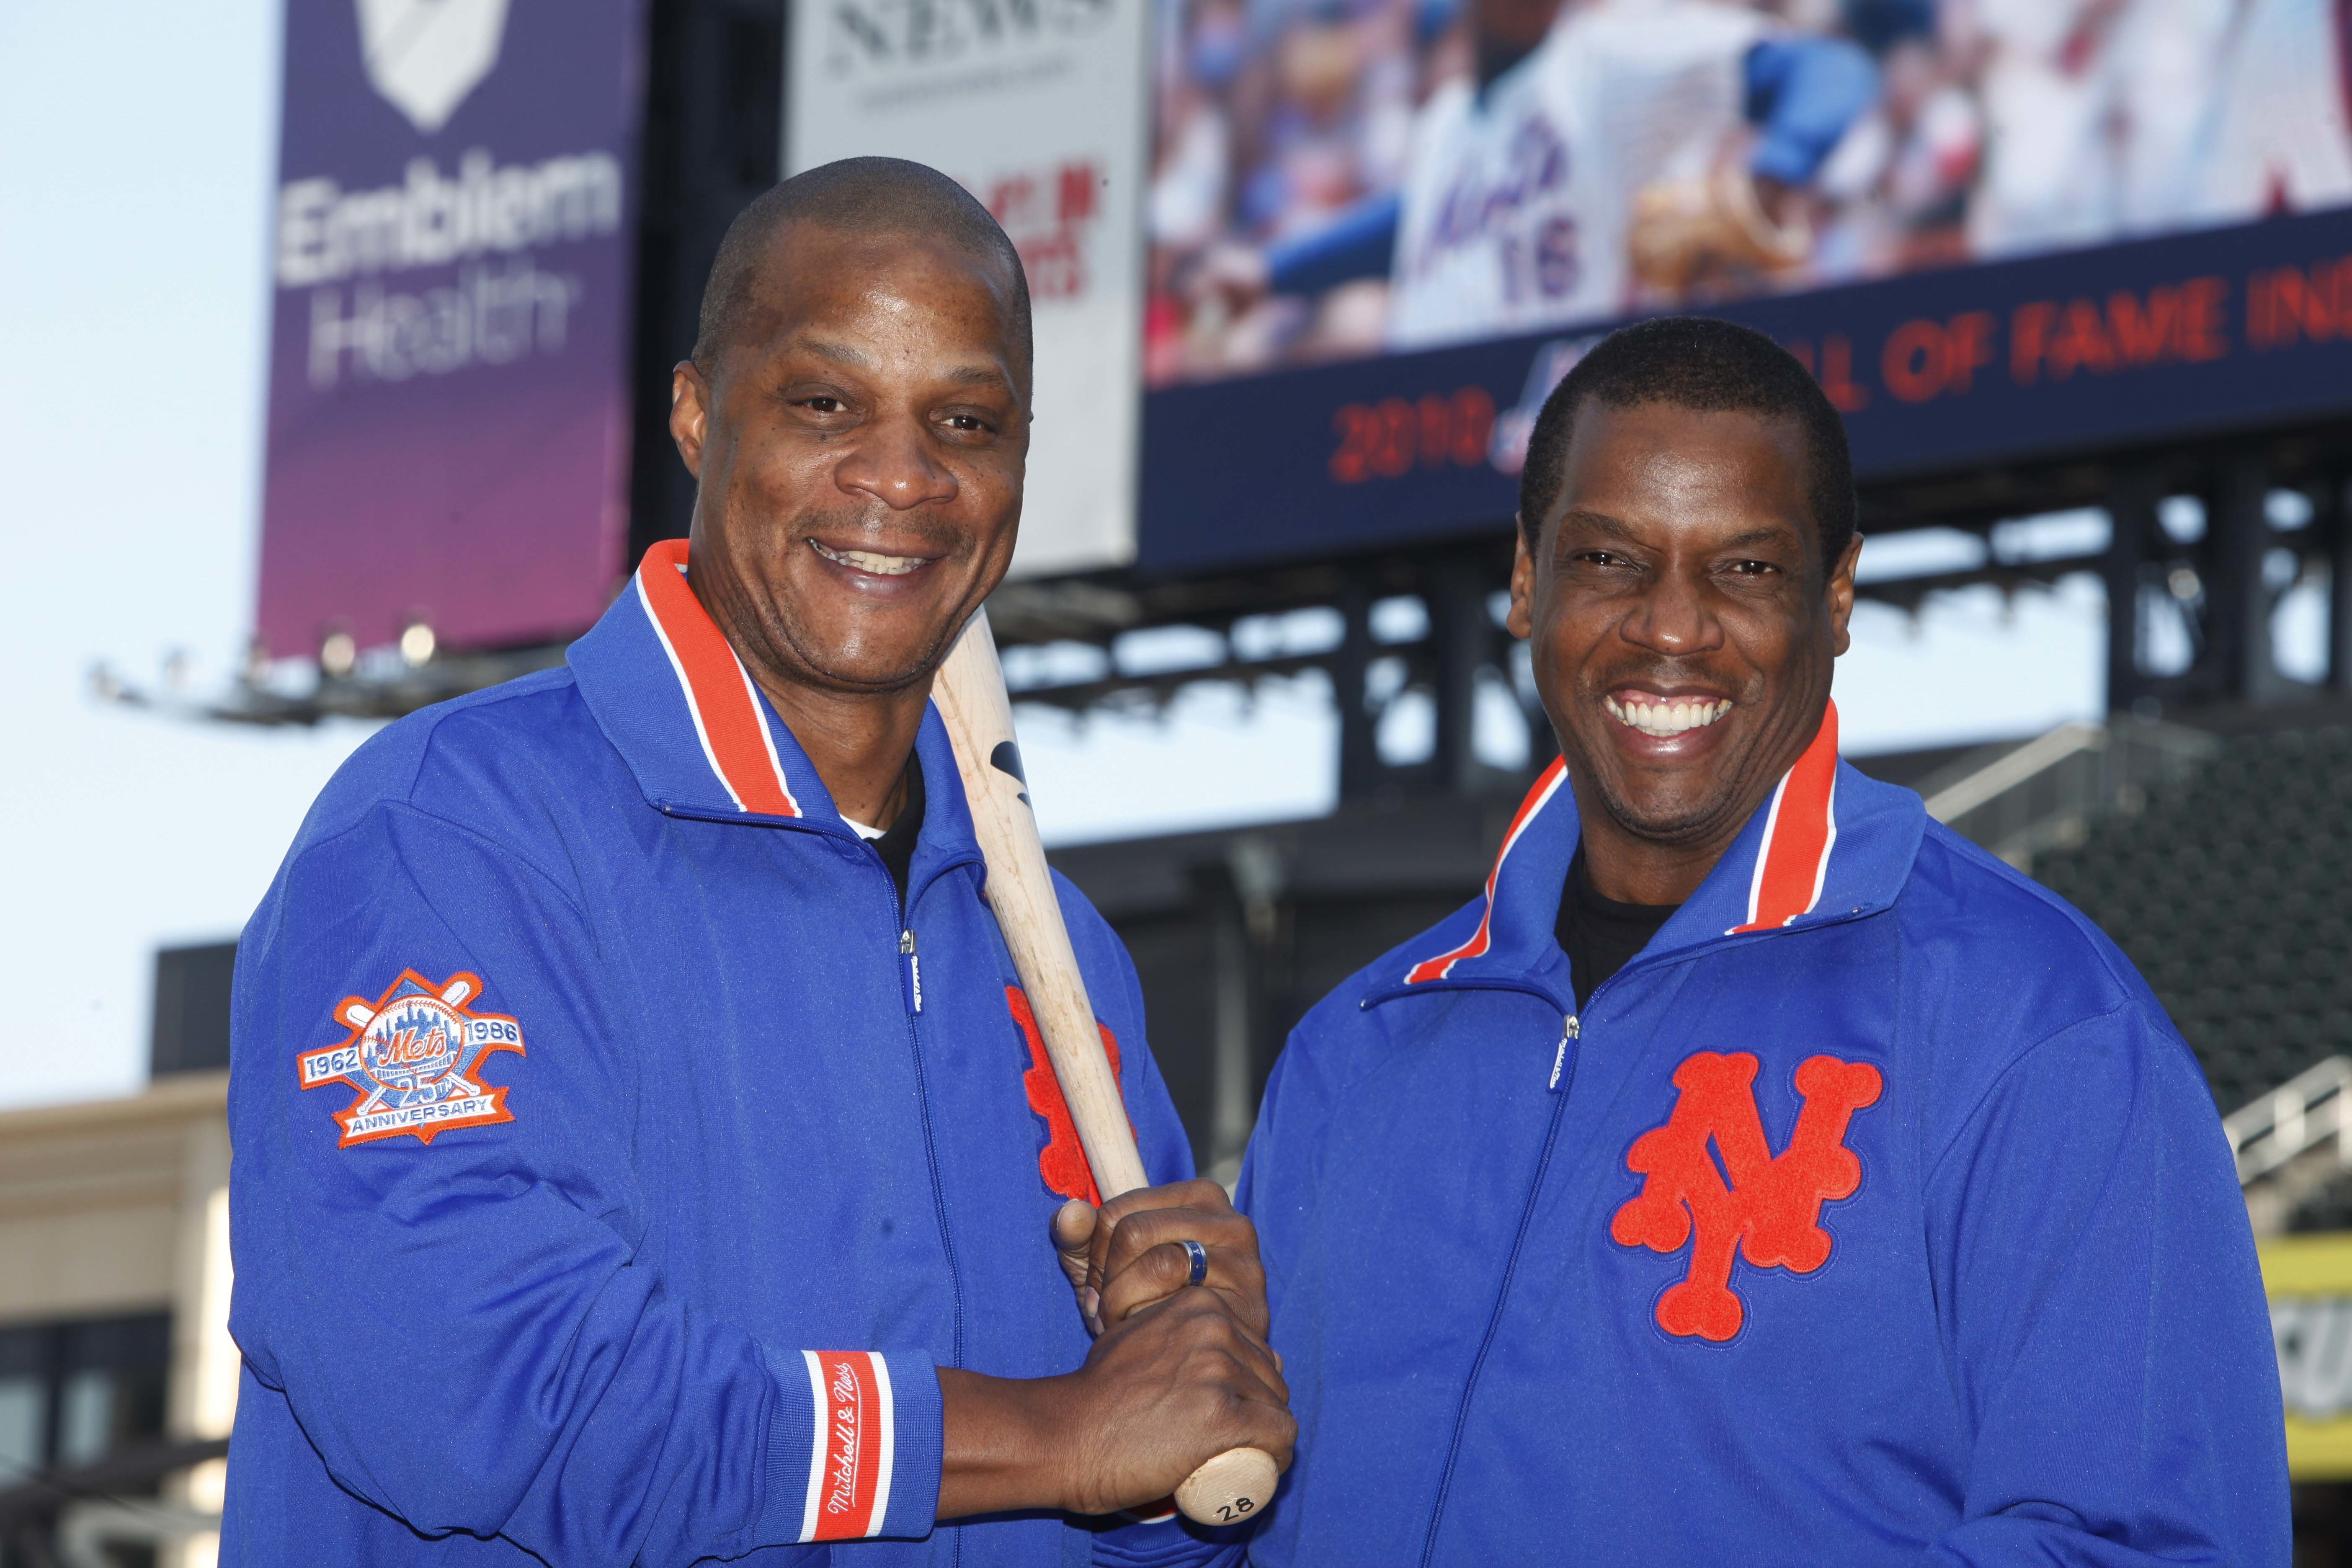 FILE - This Aug. 1, 2010, file photo shows former New York Mets' players Dwight Gooden, right, and Darryl Strawberry posing at Citi Field in New York. Gooden has denied, Monday, Aug. 22, 2016, Darryl Strawberrys accusation that he is a complete junkie-add